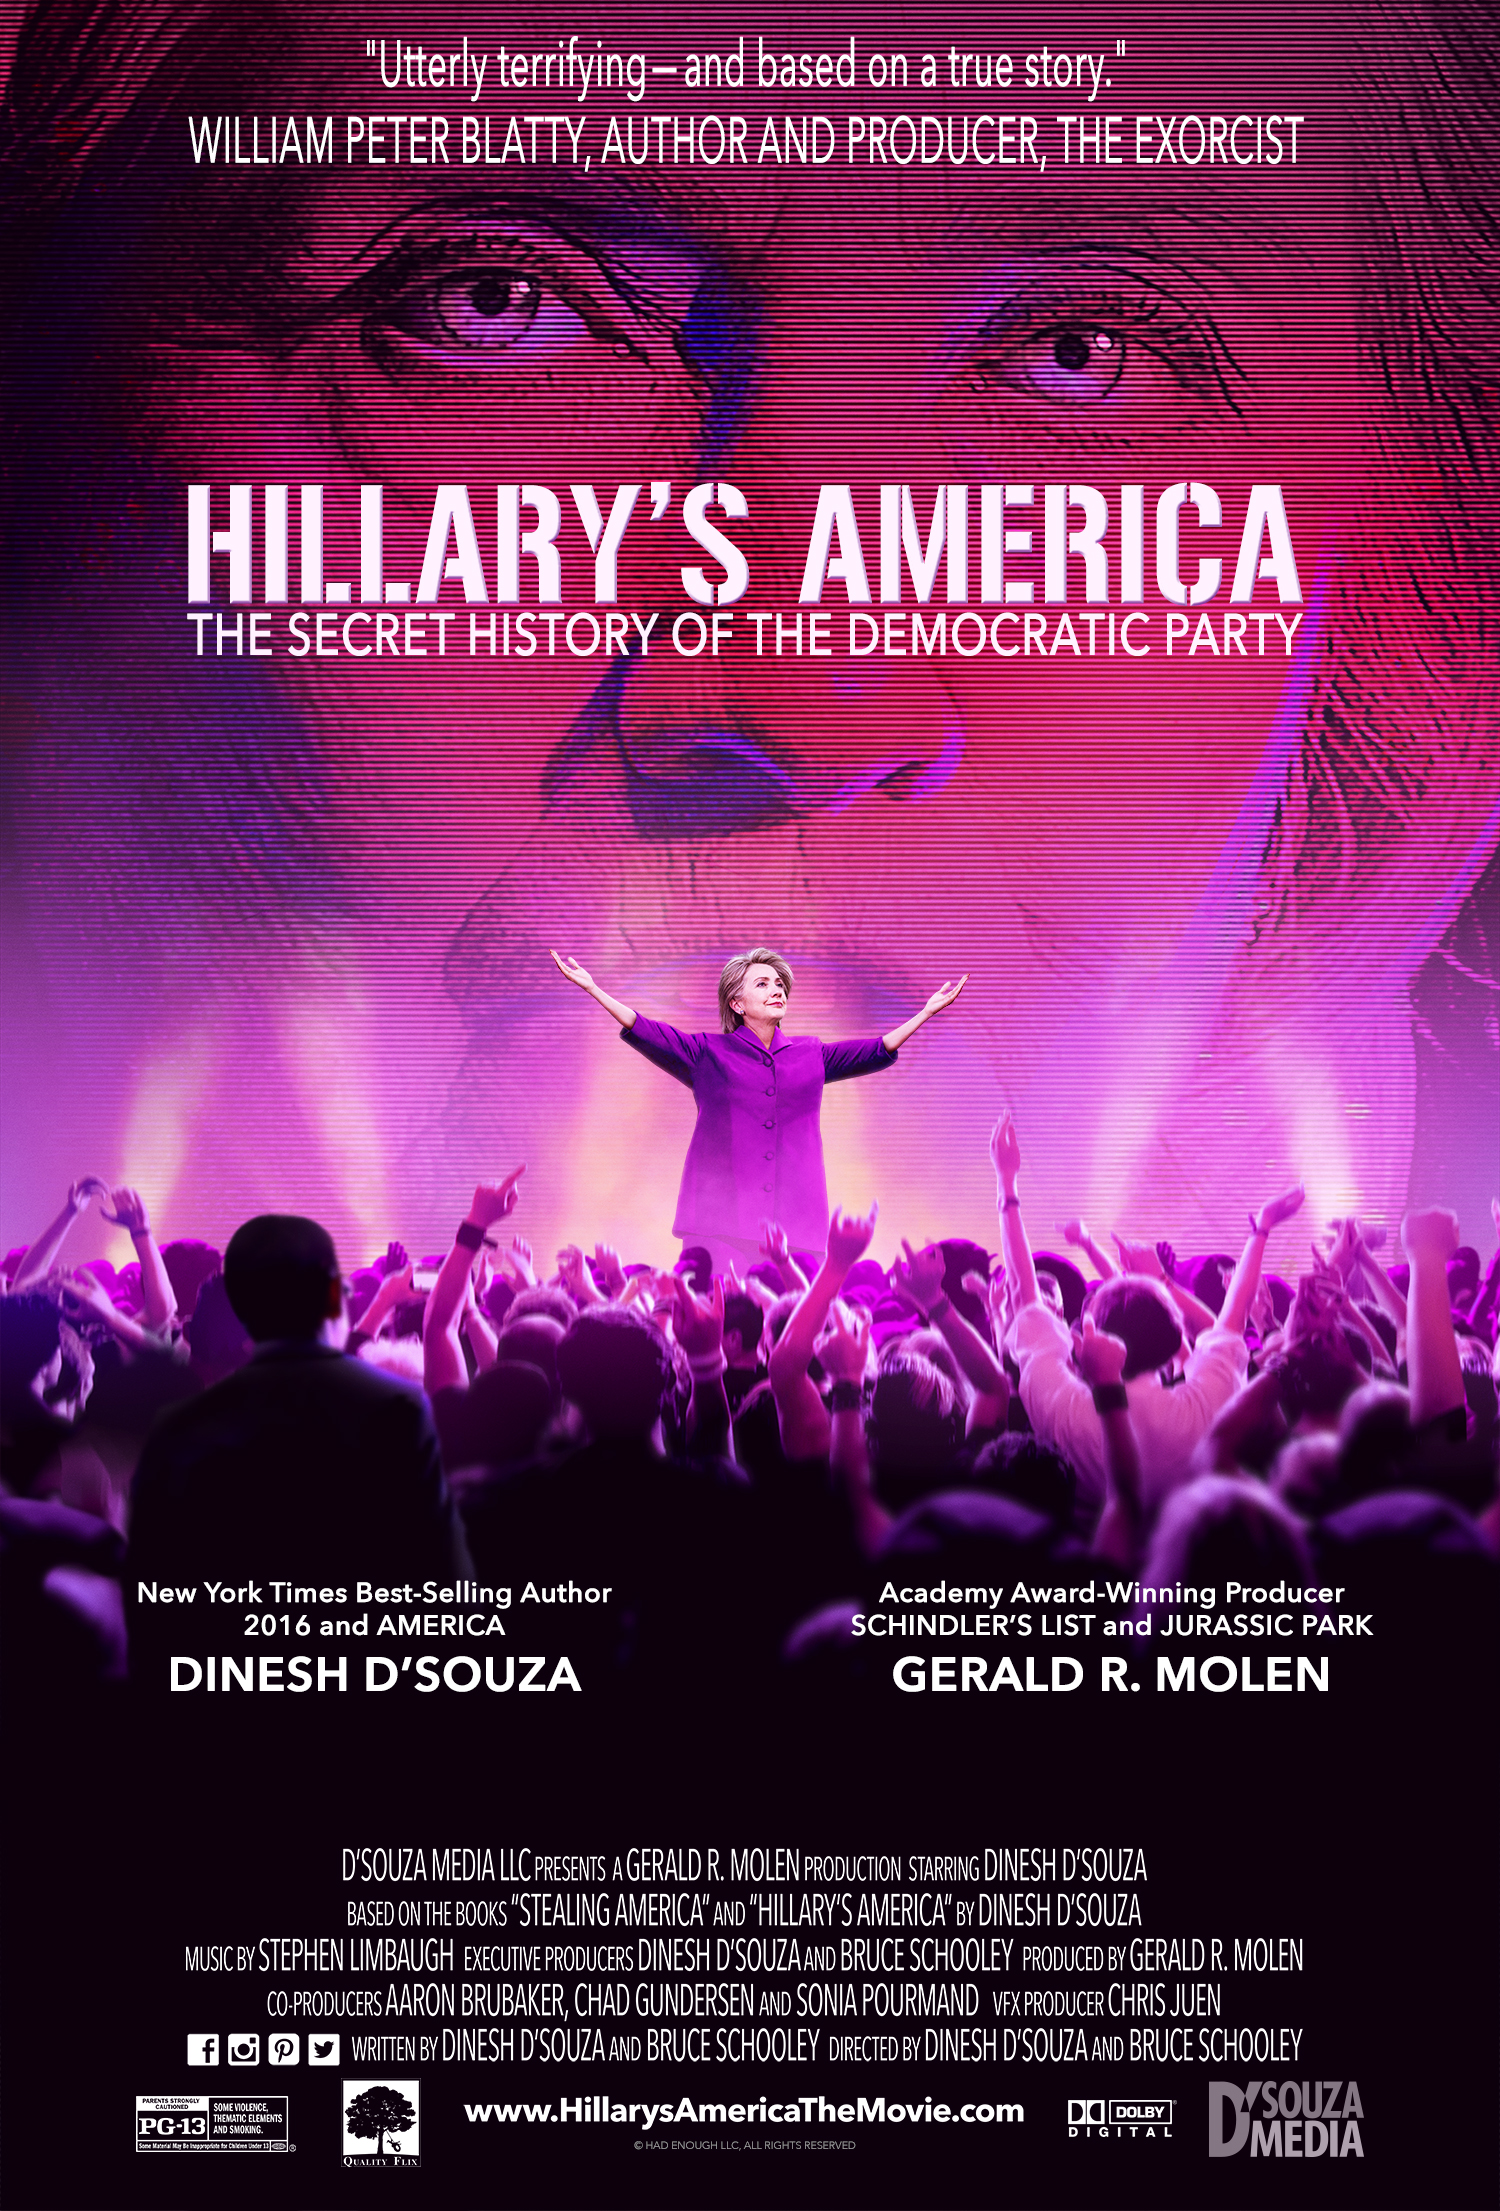 History Of Us Science Fiction And Fantasy Magazines To: Hillary's America: The Secret History Of The Democratic Party